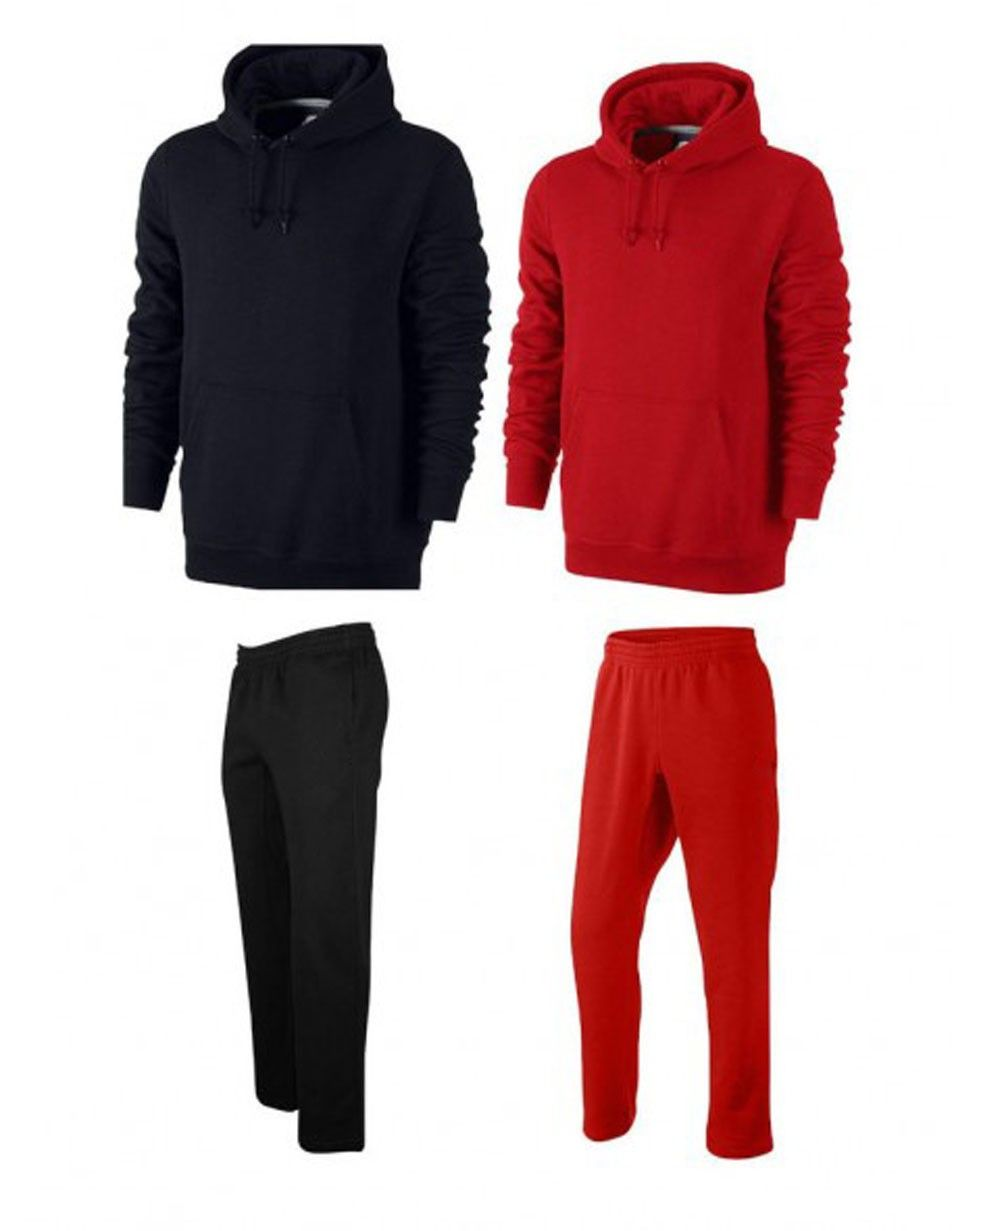 Http Www Quickapparels Com Women Pullover Fashionable Hot Sweatsuit Html Nike Sweat Suits Nike Hoodies For Men Sweatsuit